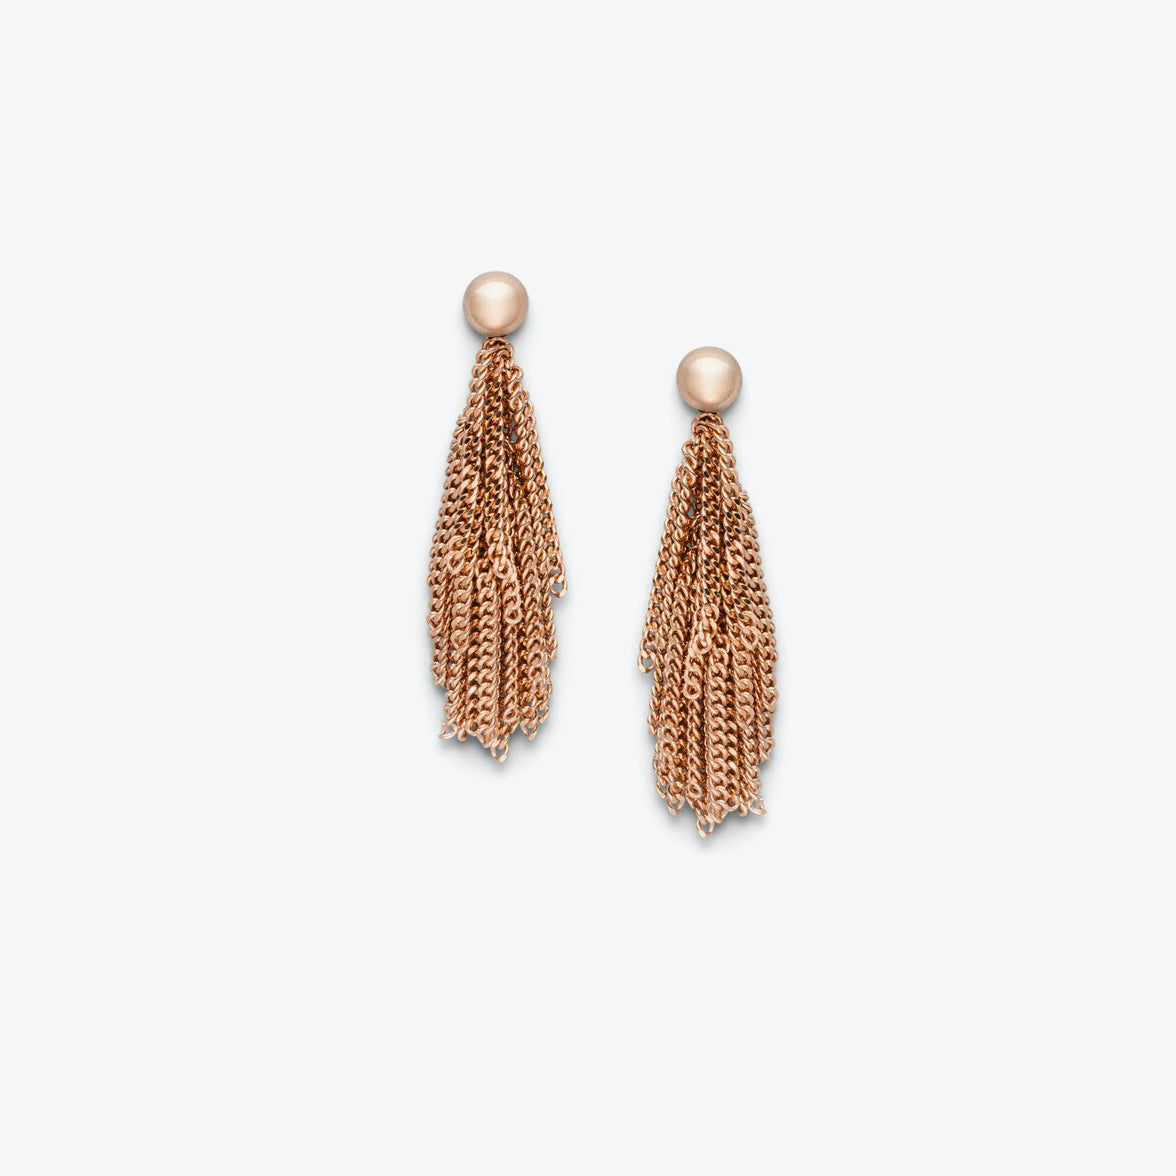 SHORT SIARA EARRINGS - ROSE GOLD PLATED